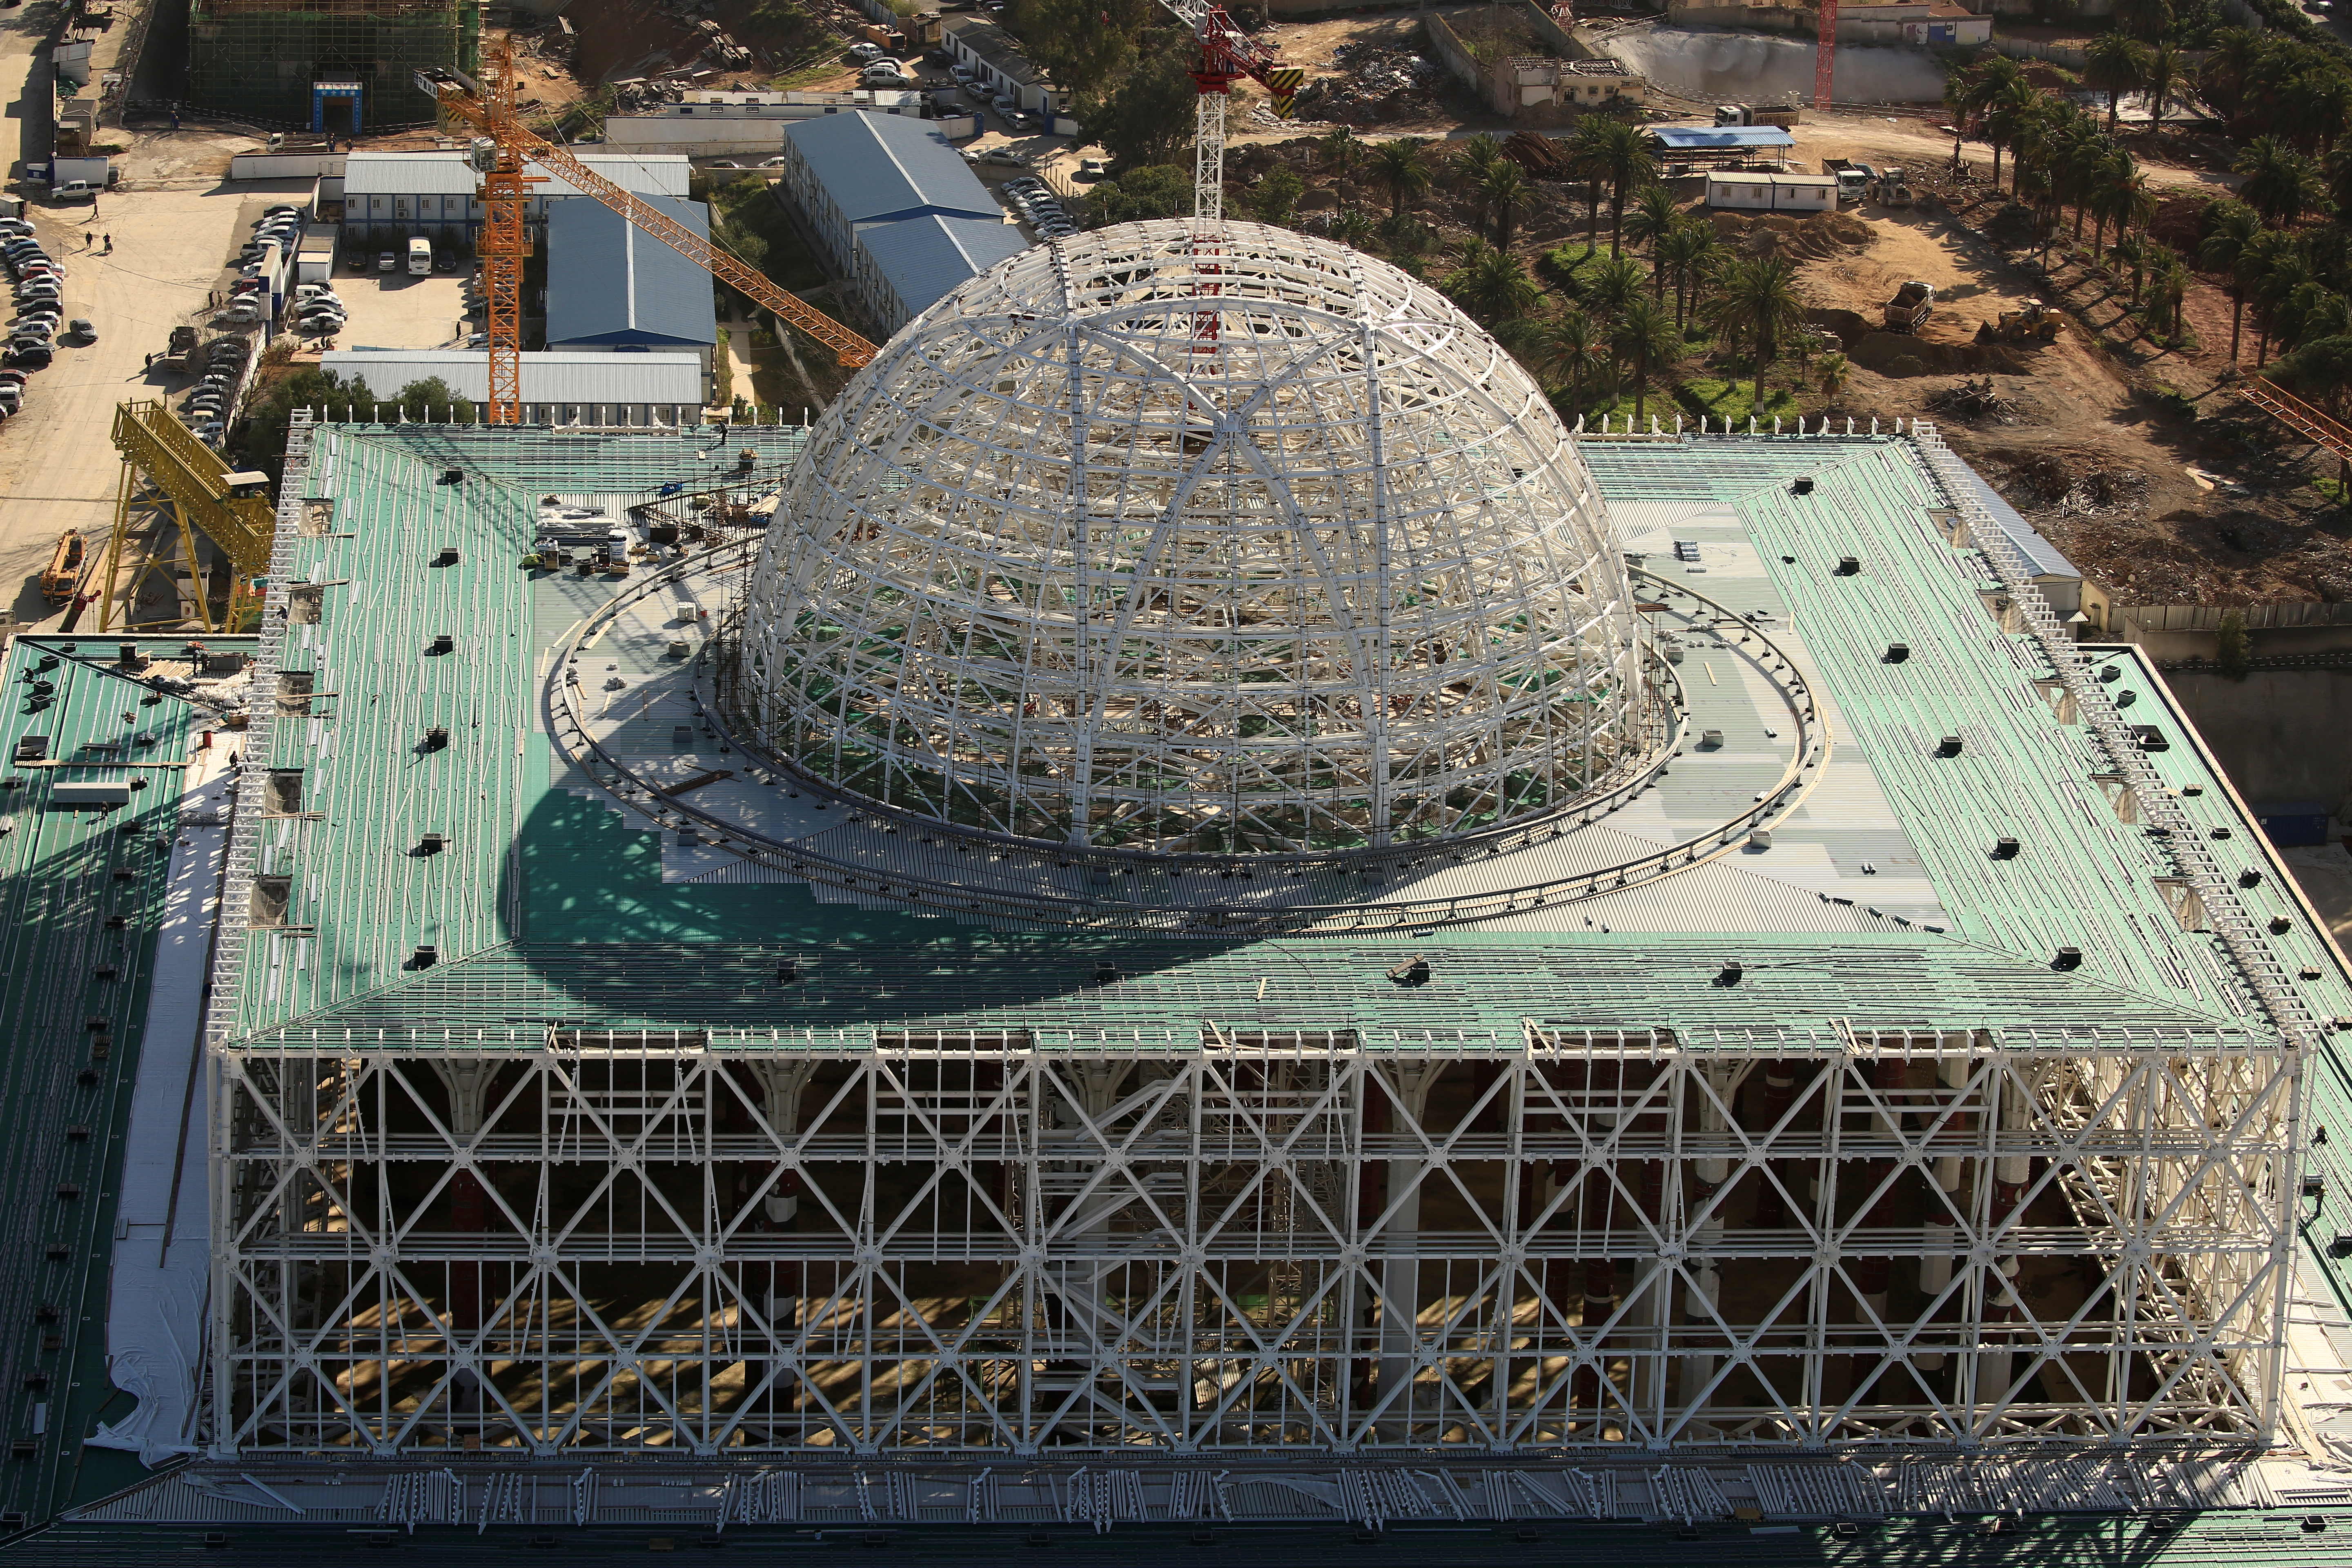 A view of the dome at the construction site of the new Great Mosque of Algiers, called Djemaa El Djazair, which is being built by the China State Construction Engineering Corporation (CSCEC), and overseen by Algeria's National Agency for Realization and Management (ANERGEMA) in Algiers, Algeria February 7, 2017.